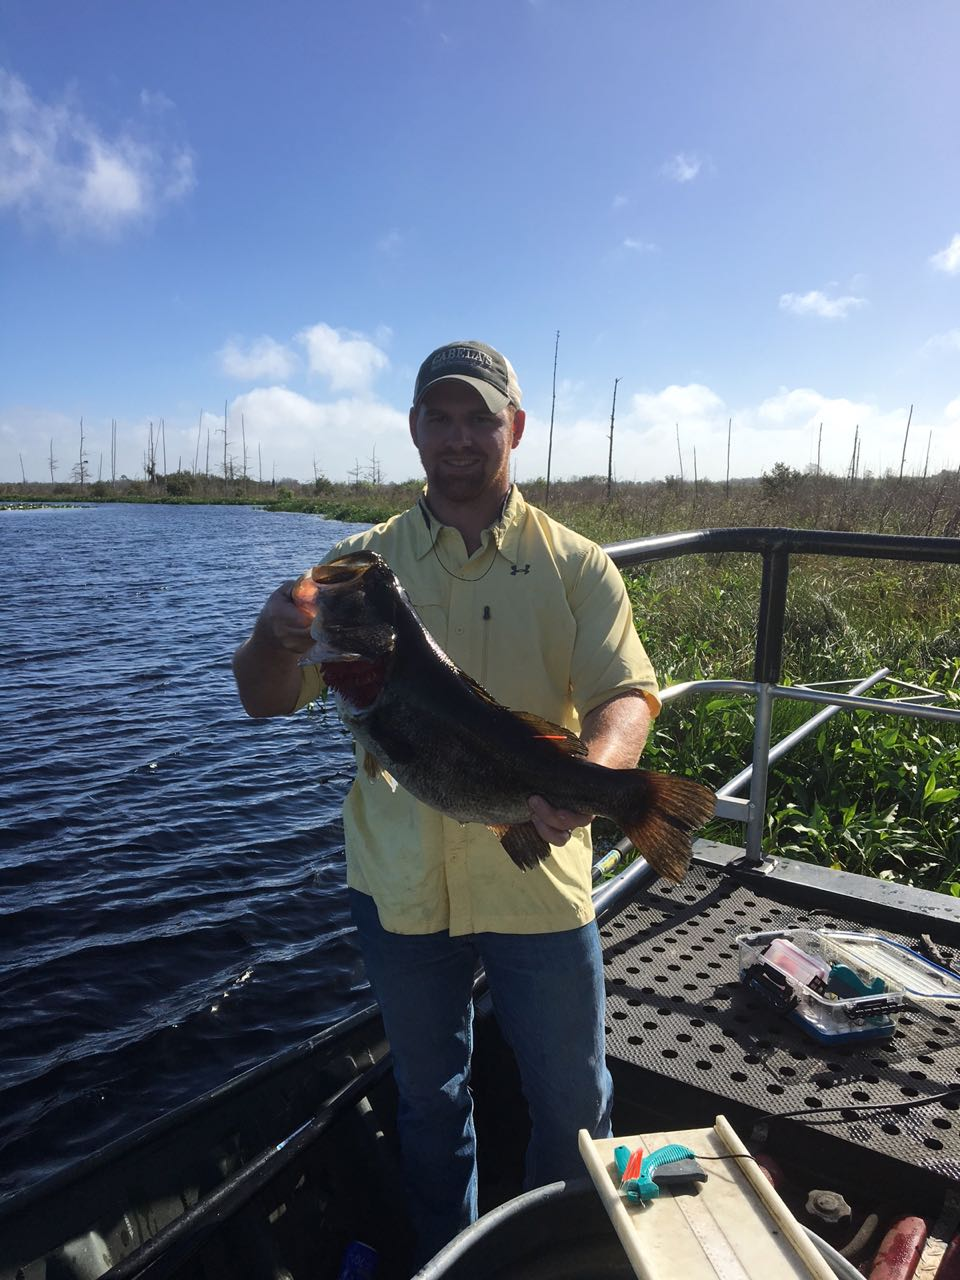 deseret-cattle-citrus-florida-ranch-largemouth-bass (2).jpg